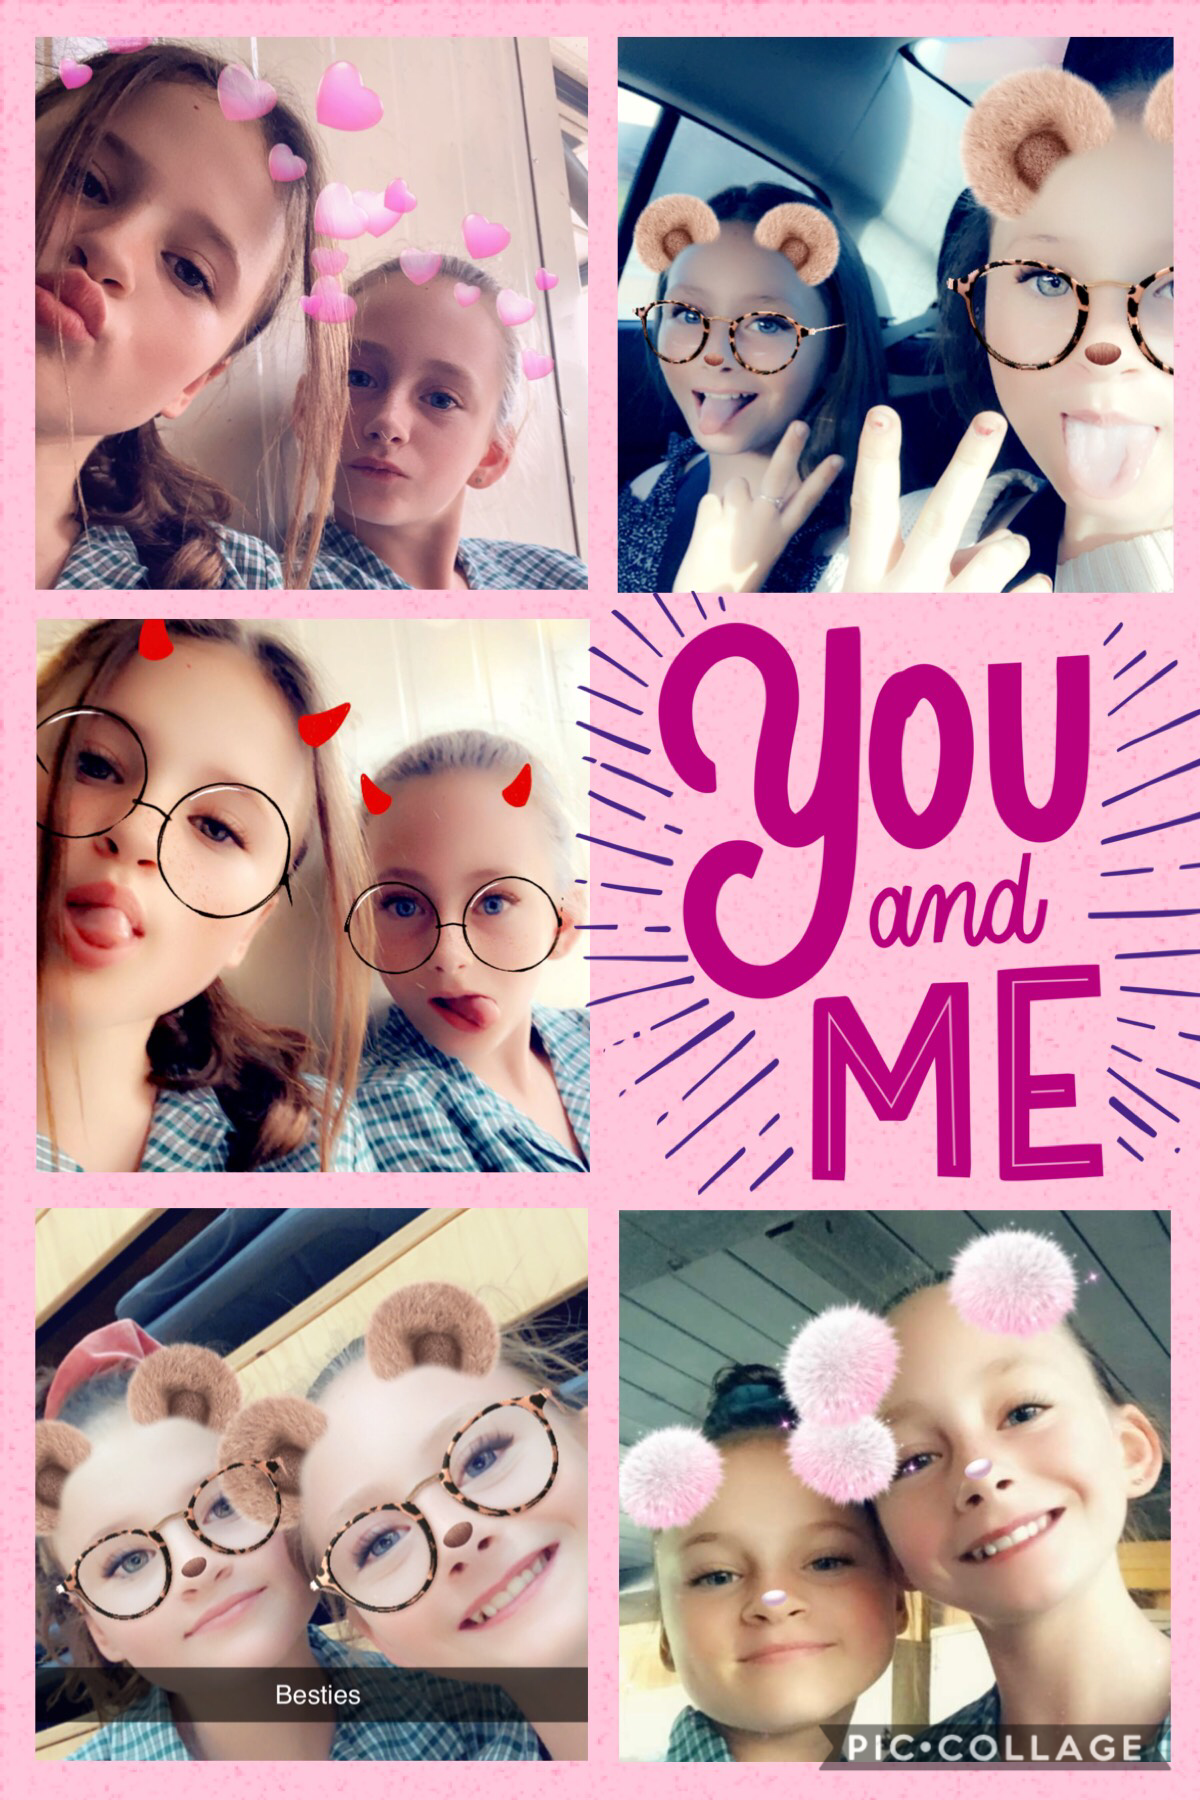 Follow my Bestie on Cla0057 and me on bev0002 And 💙 it ❤️🧡💛💚💙💜✨✨